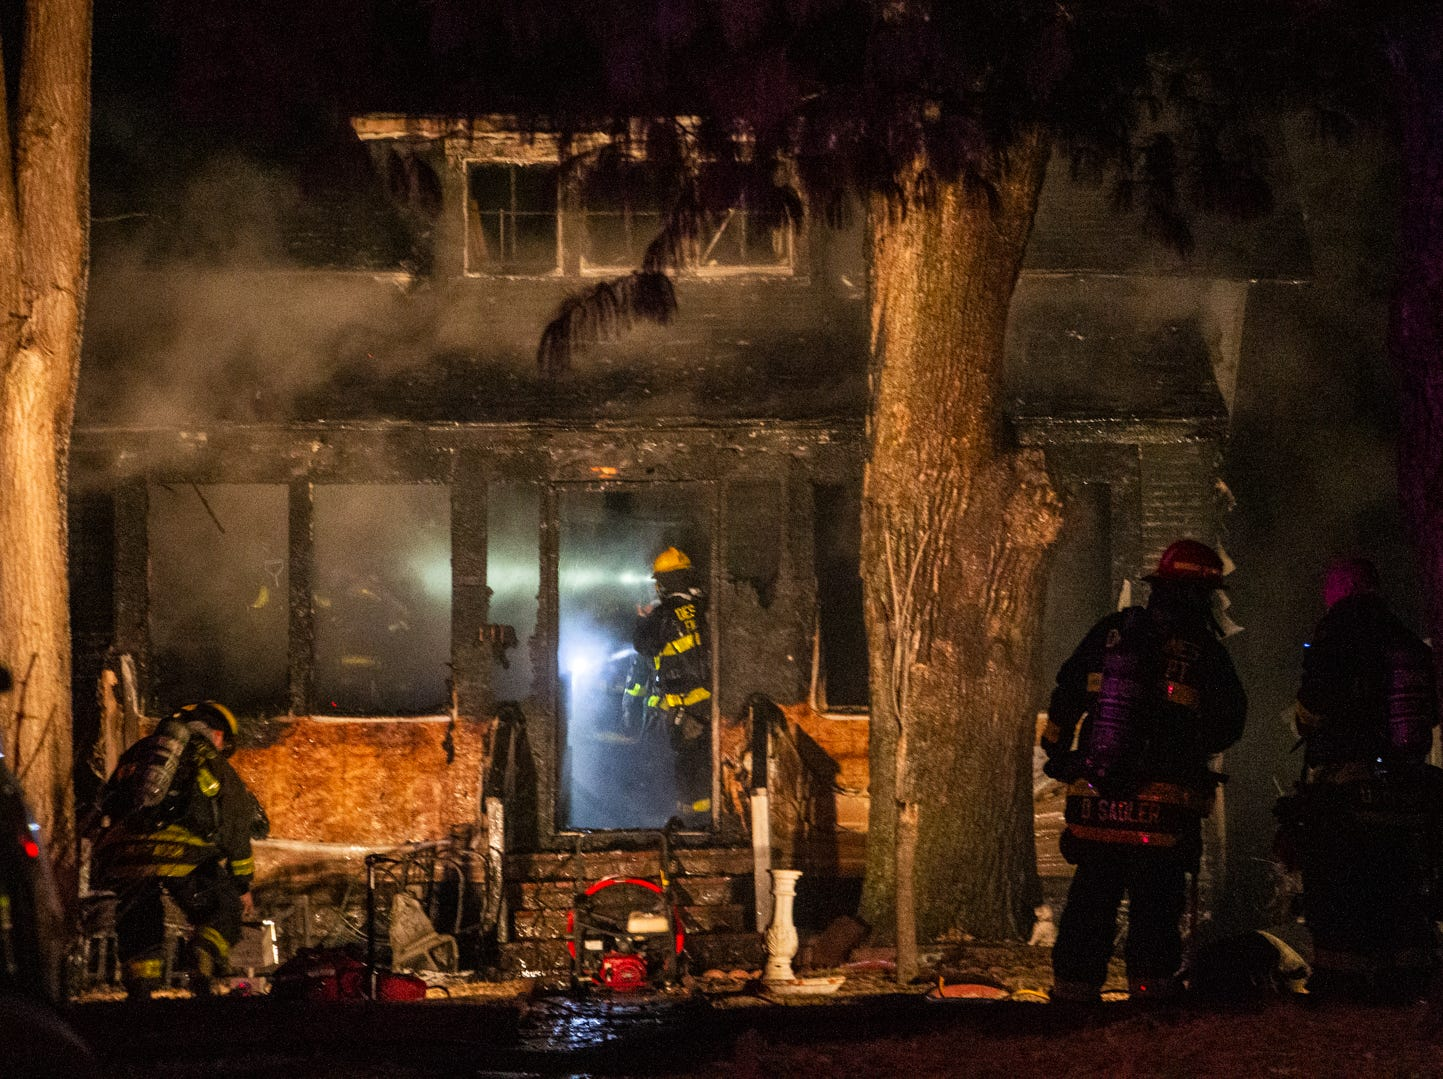 FIre crews work to extinguish a blaze at 1113 37th Street on Wednesday, Jan. 9, 2018.